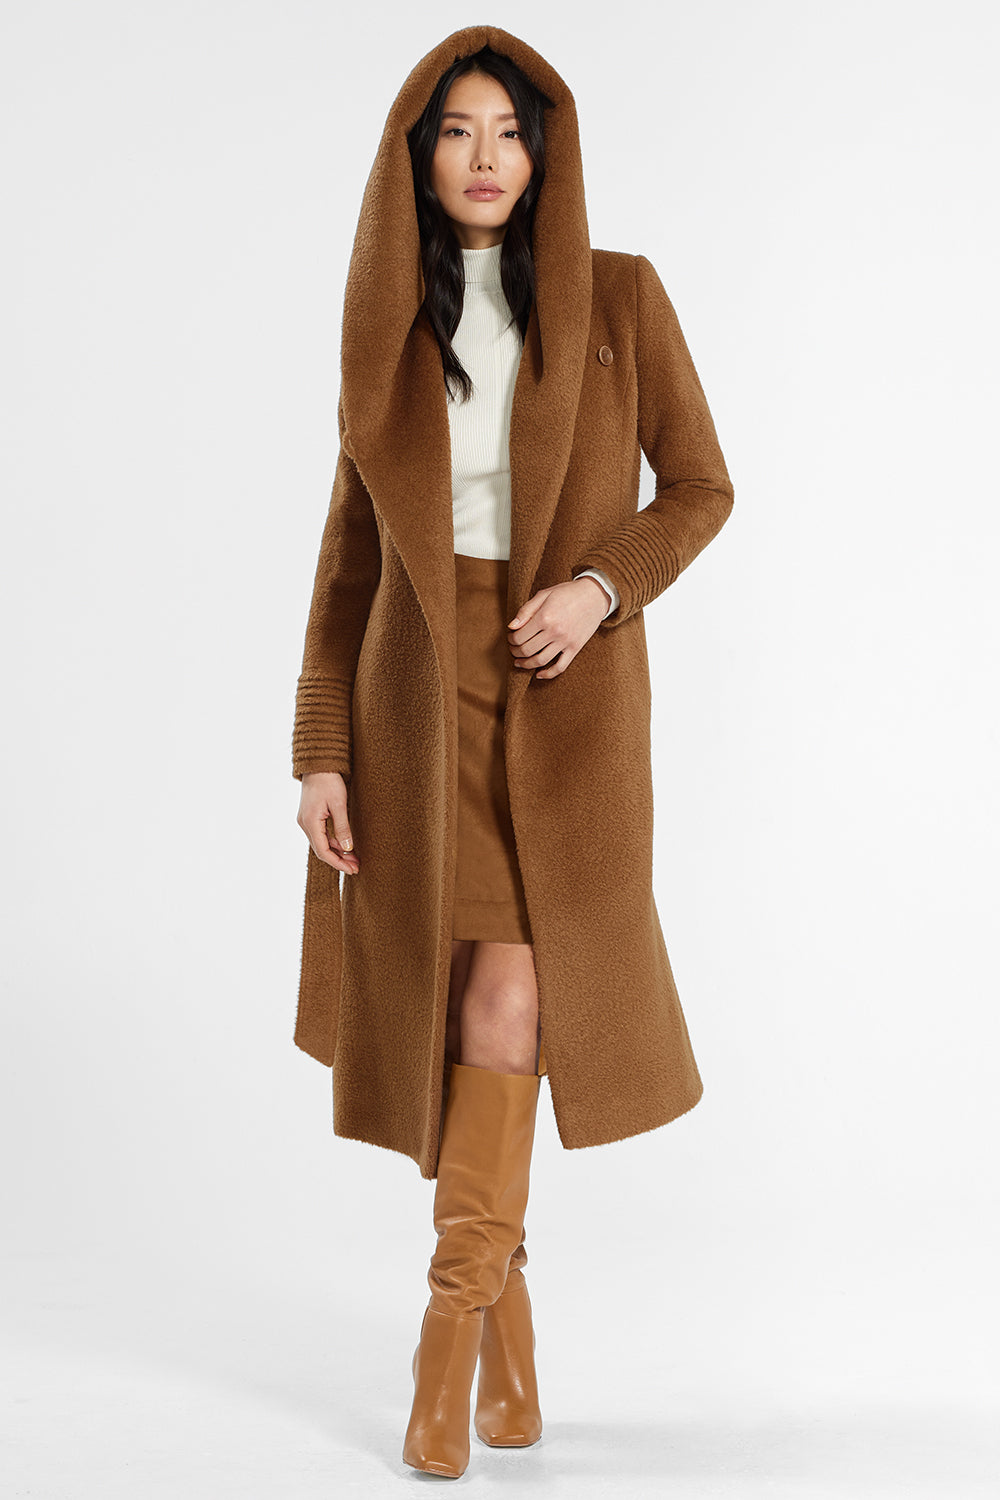 Sentaler Bouclé Alpaca Long Hooded Wrap Coat featured in Bouclé Alpaca and available in Caramel Café. Seen open.